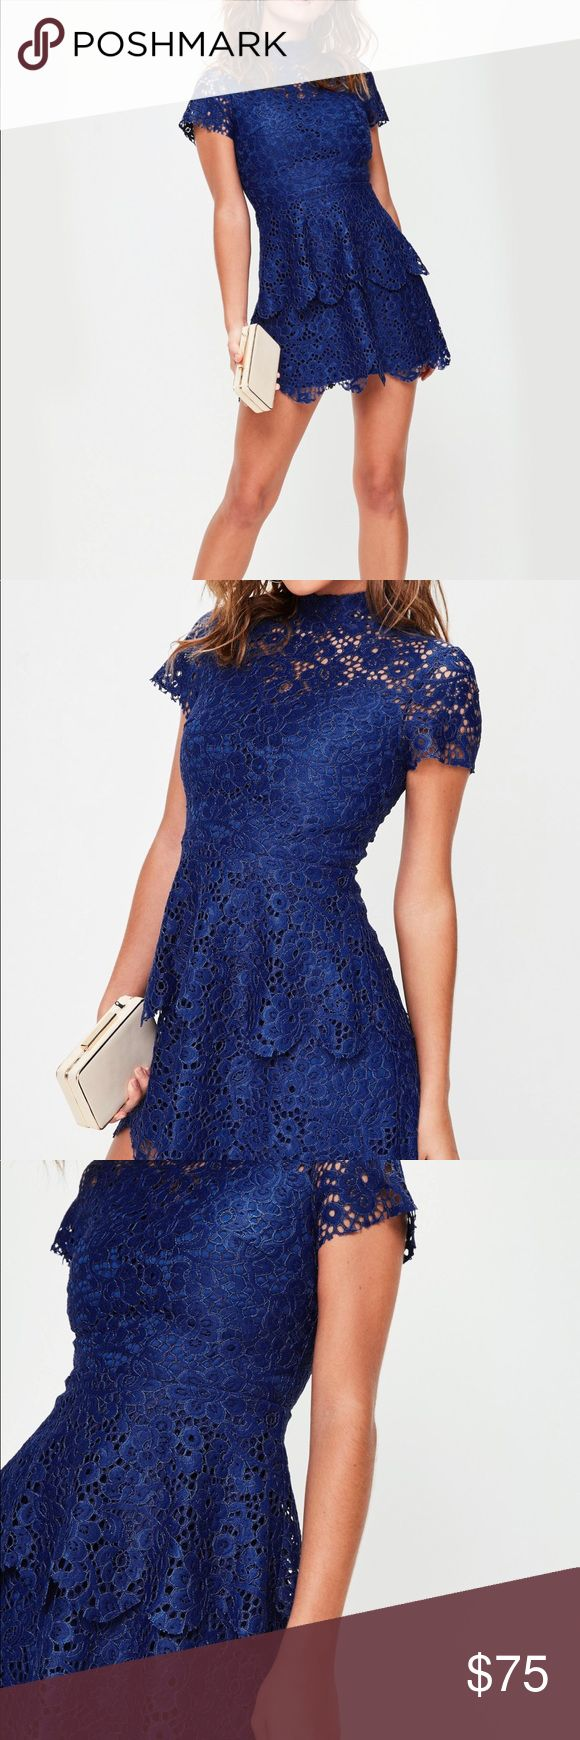 Missguided Blue Lace Dress Beautiful dress just didn't fit me! Only worn once to try on, tags still attached. Feel free to make an offer! Missguided Dresses Mini